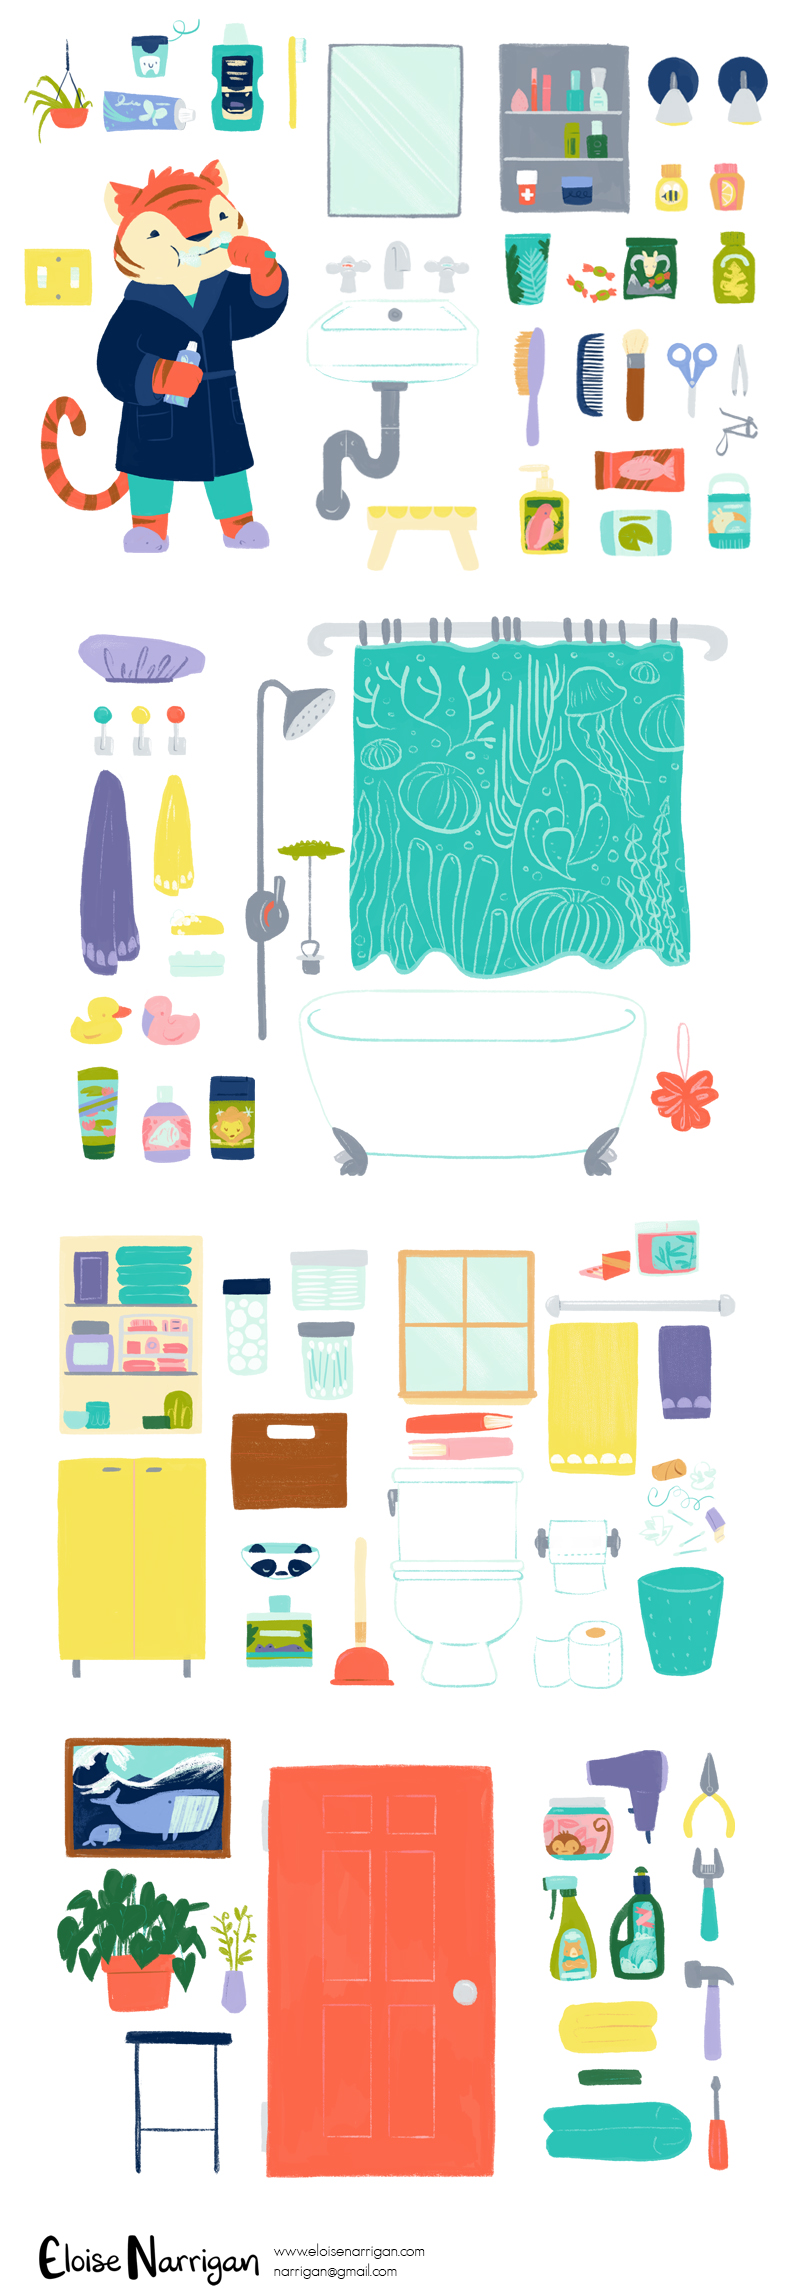 eloise narrigan_tigerbathroomitems.jpg